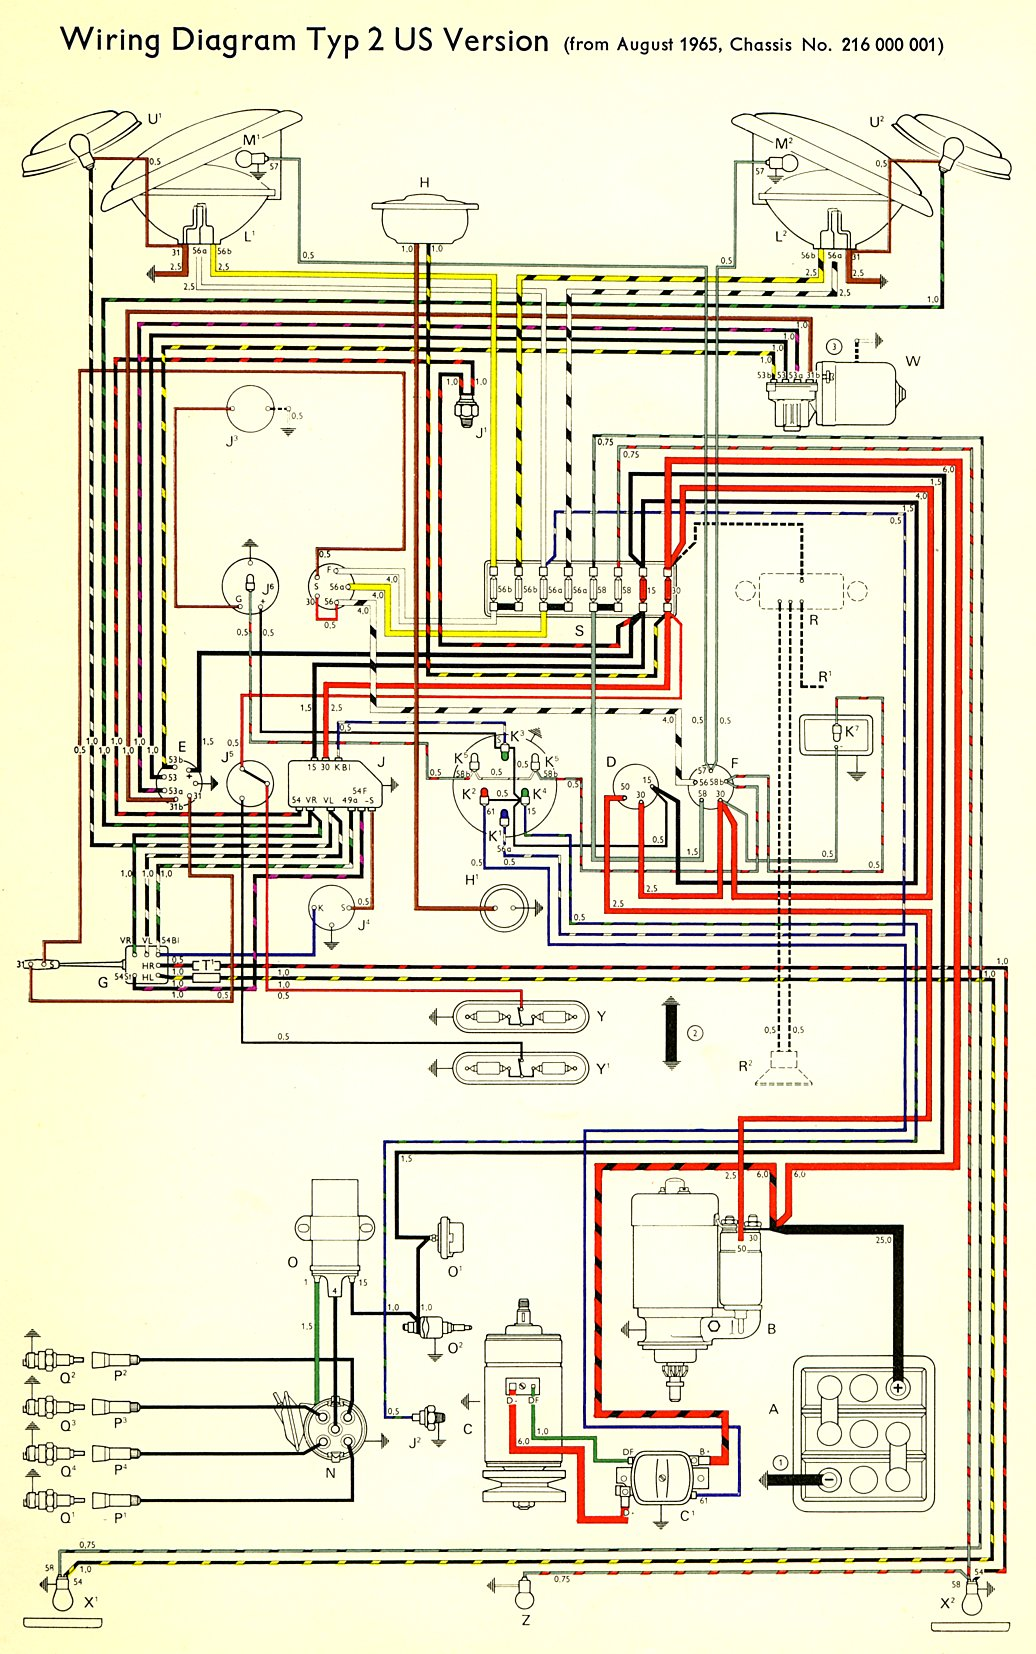 bus_66_USA 1966 bus wiring diagram (usa) thegoldenbug com bus wiring diagrams at eliteediting.co